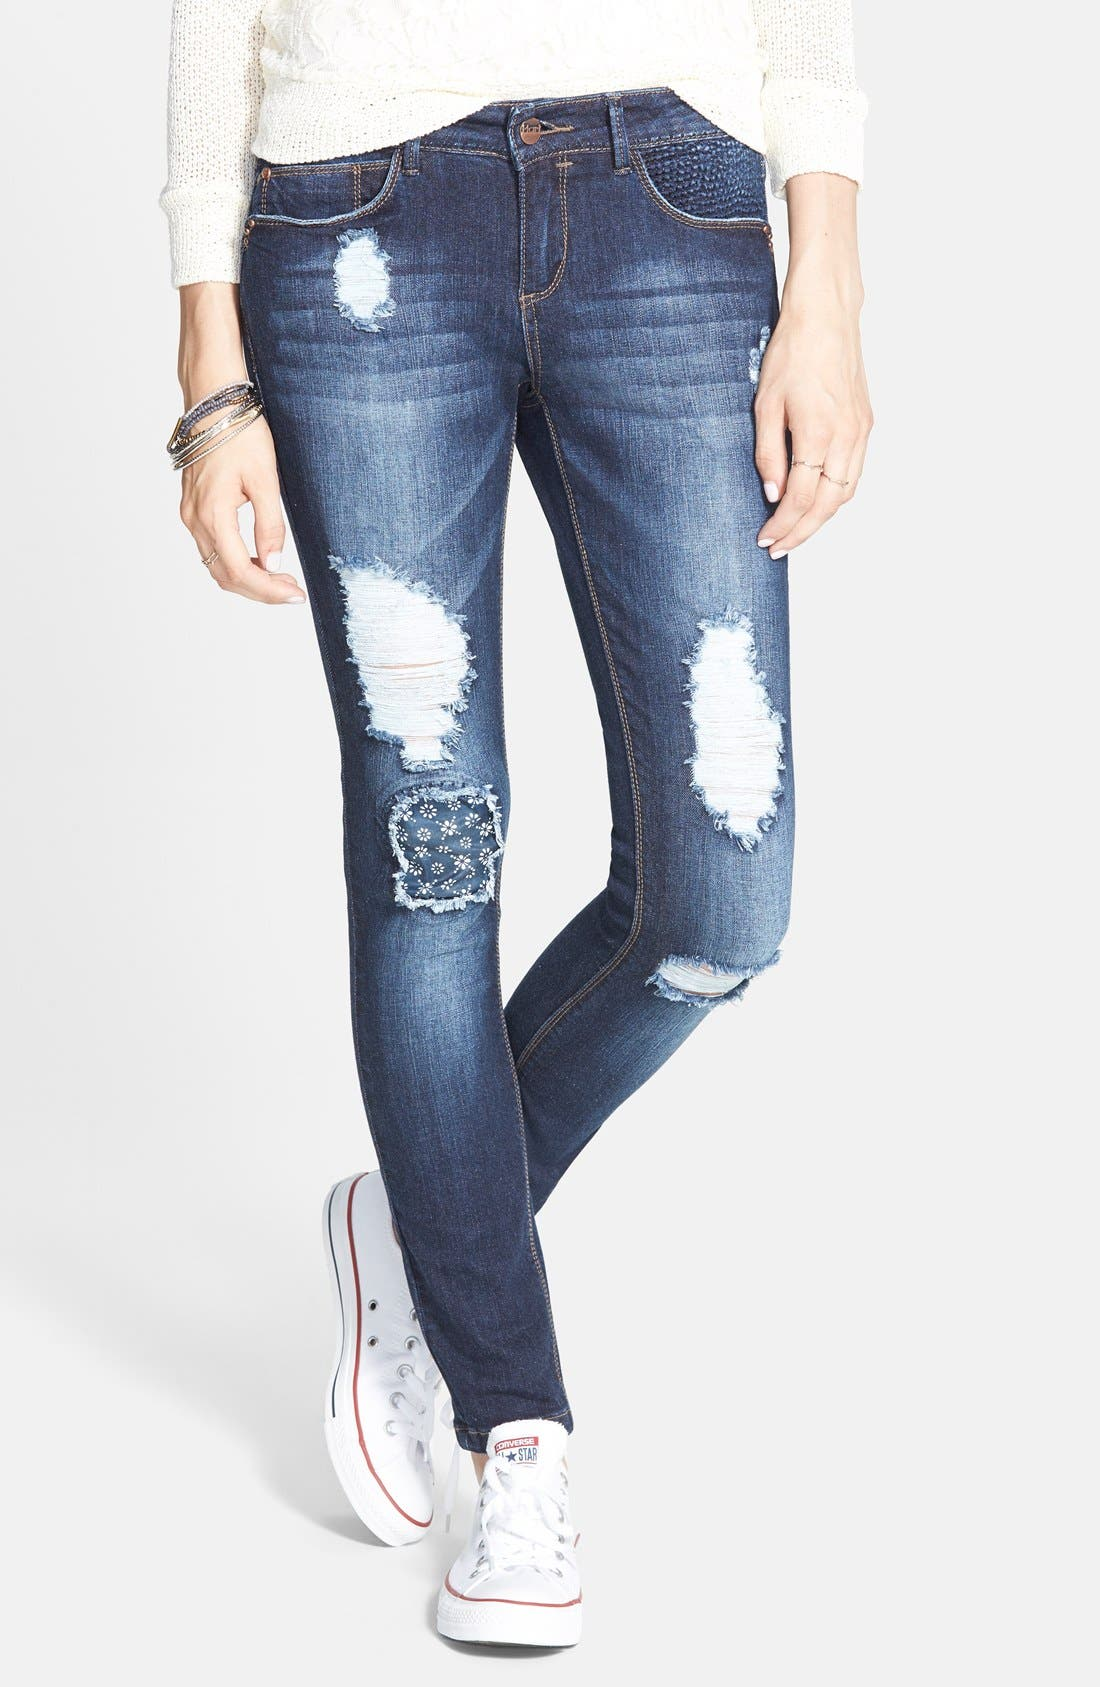 Alternate Image 1 Selected - HART Denim 'Leigh' Destroyed Patched Skinny Jeans (Dark Wash)